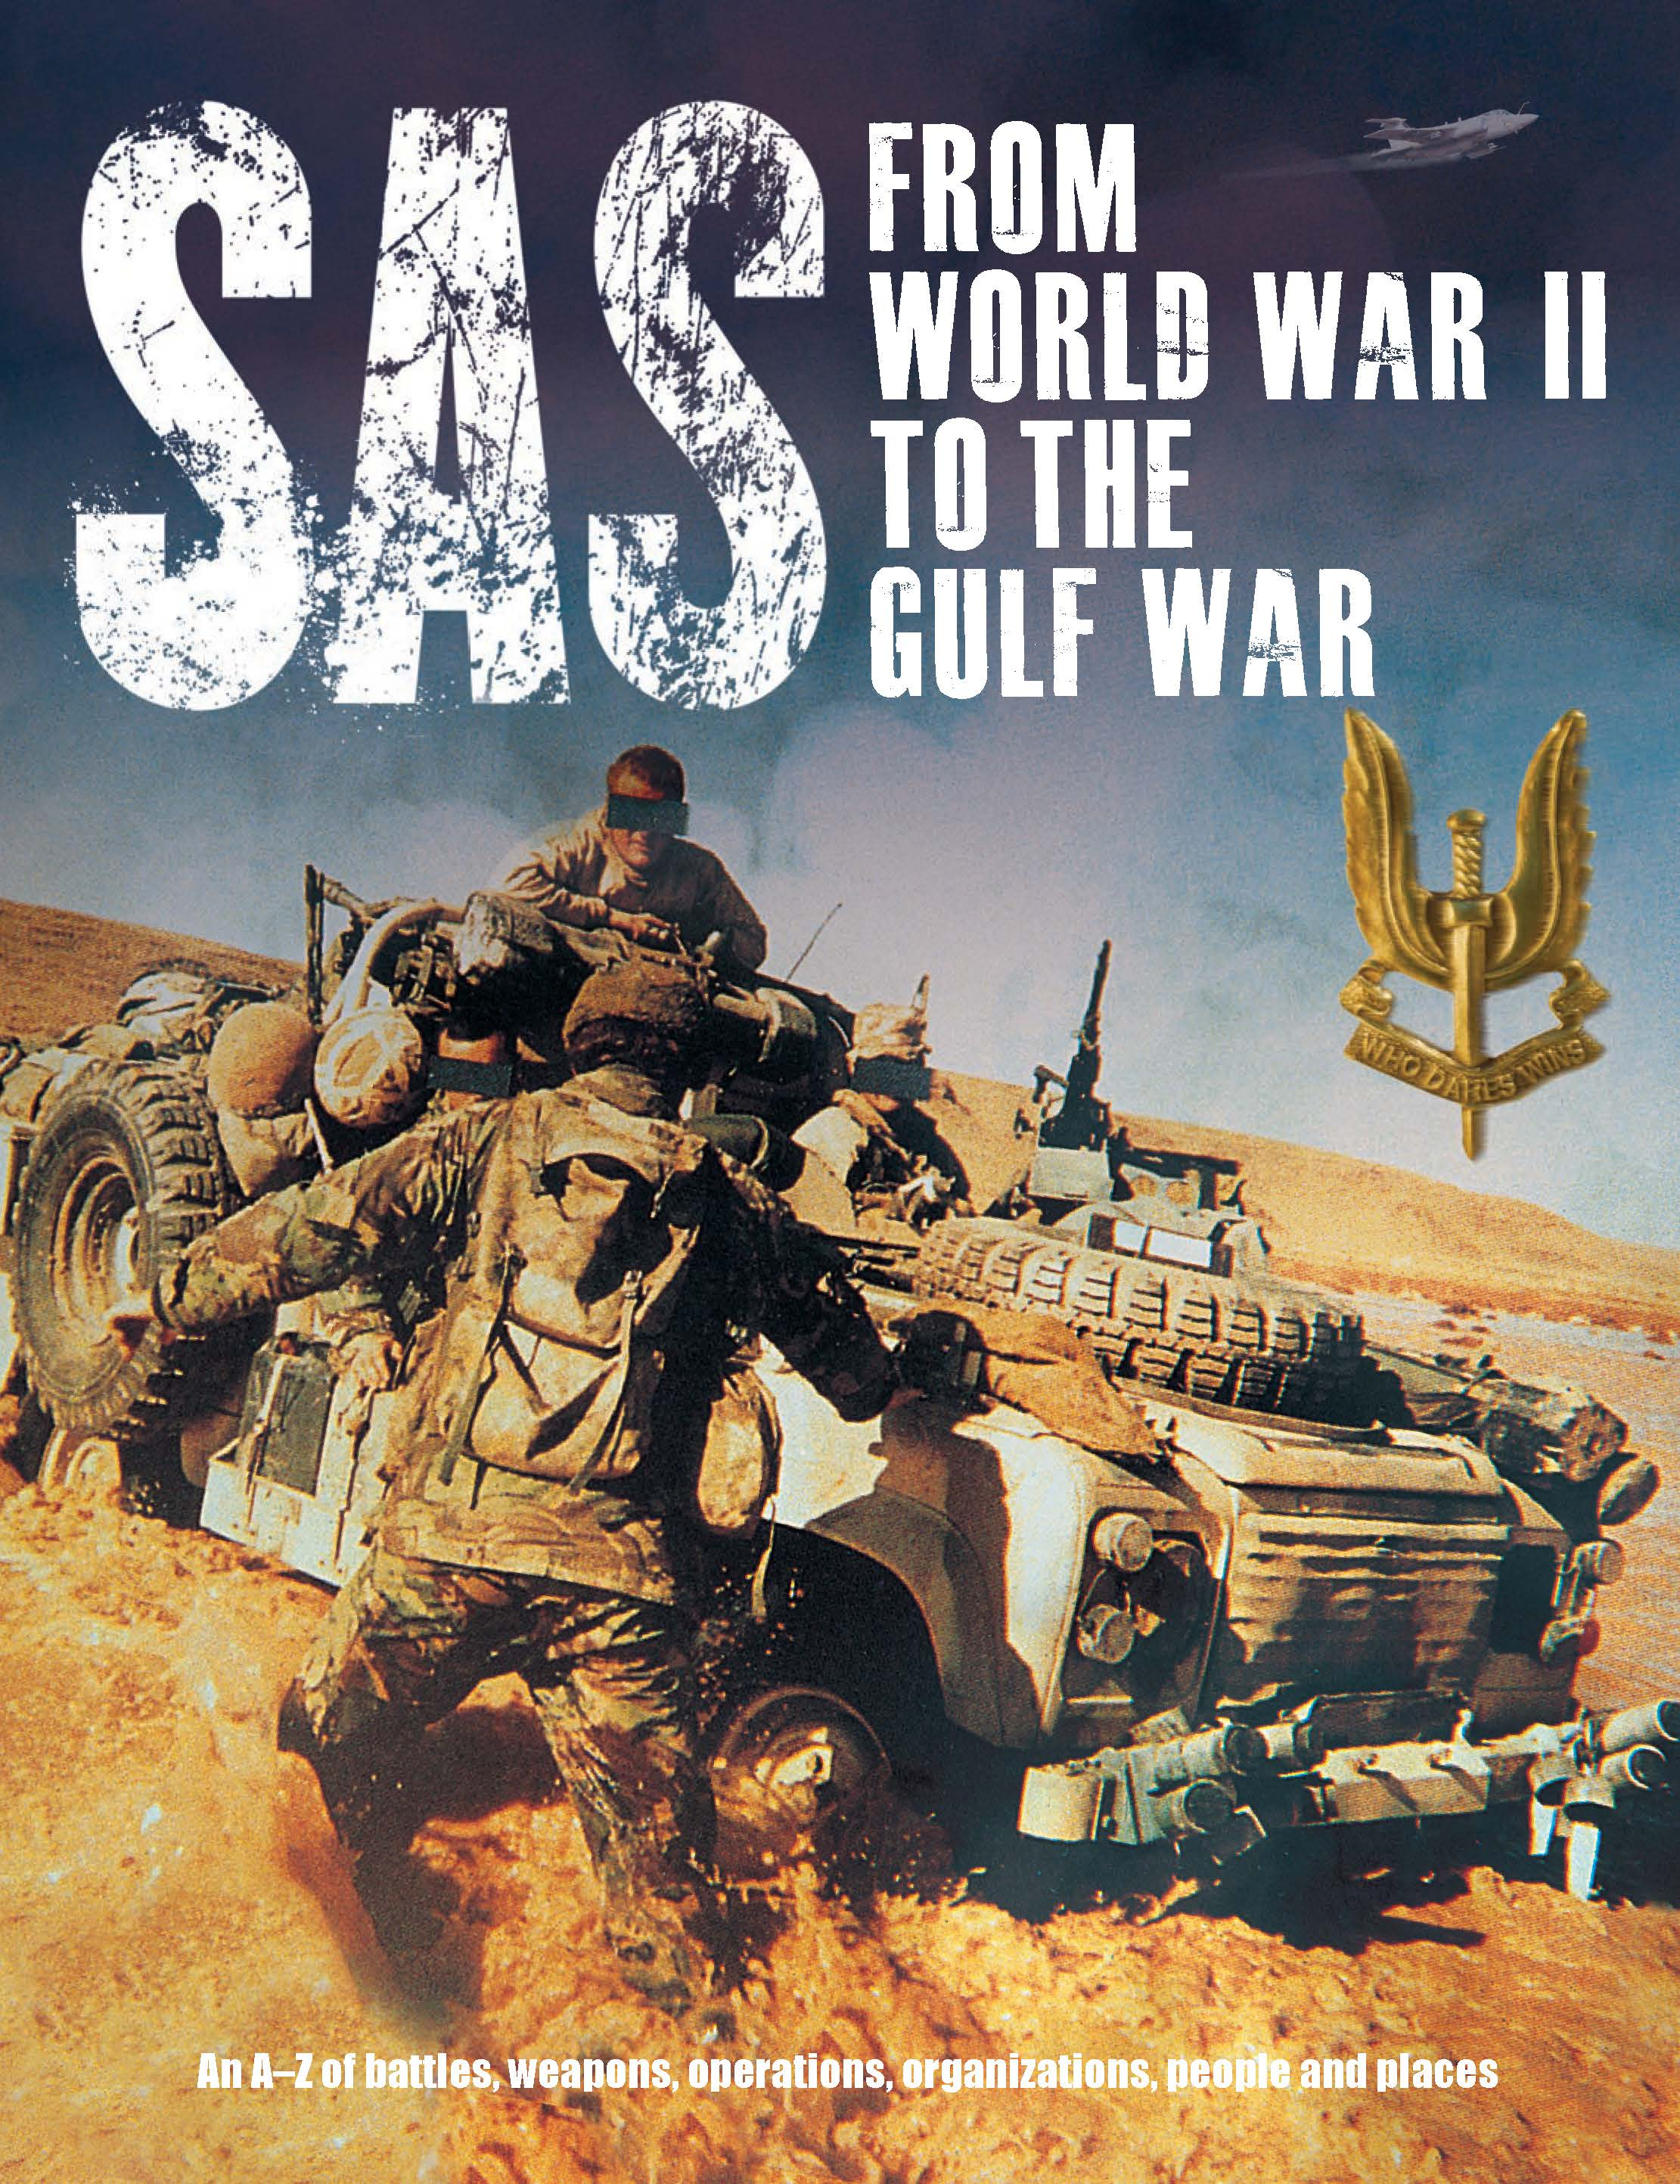 SAS: From World War II to the Gulf War